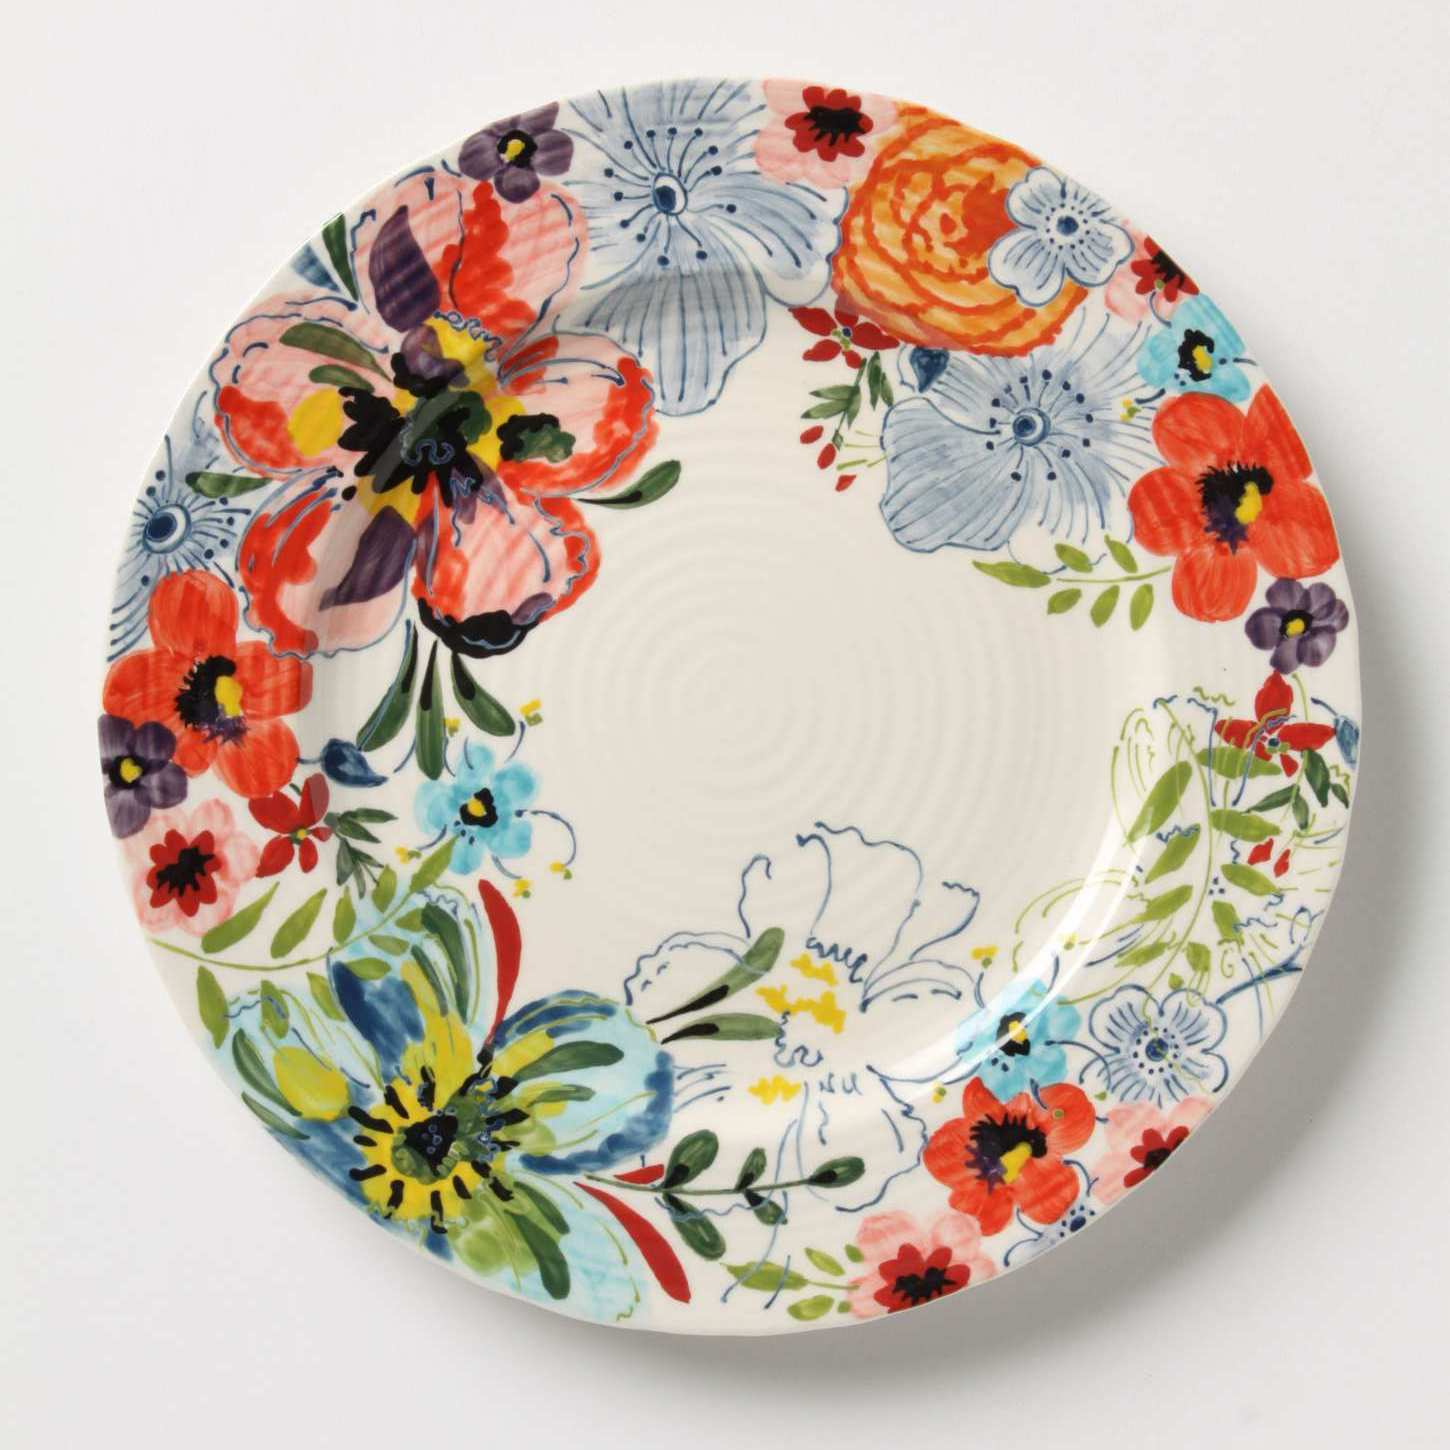 Decorative Dinner Plates Simple Wall Flowers Decorative Plates In The Dining Room  Swoon Worthy Review